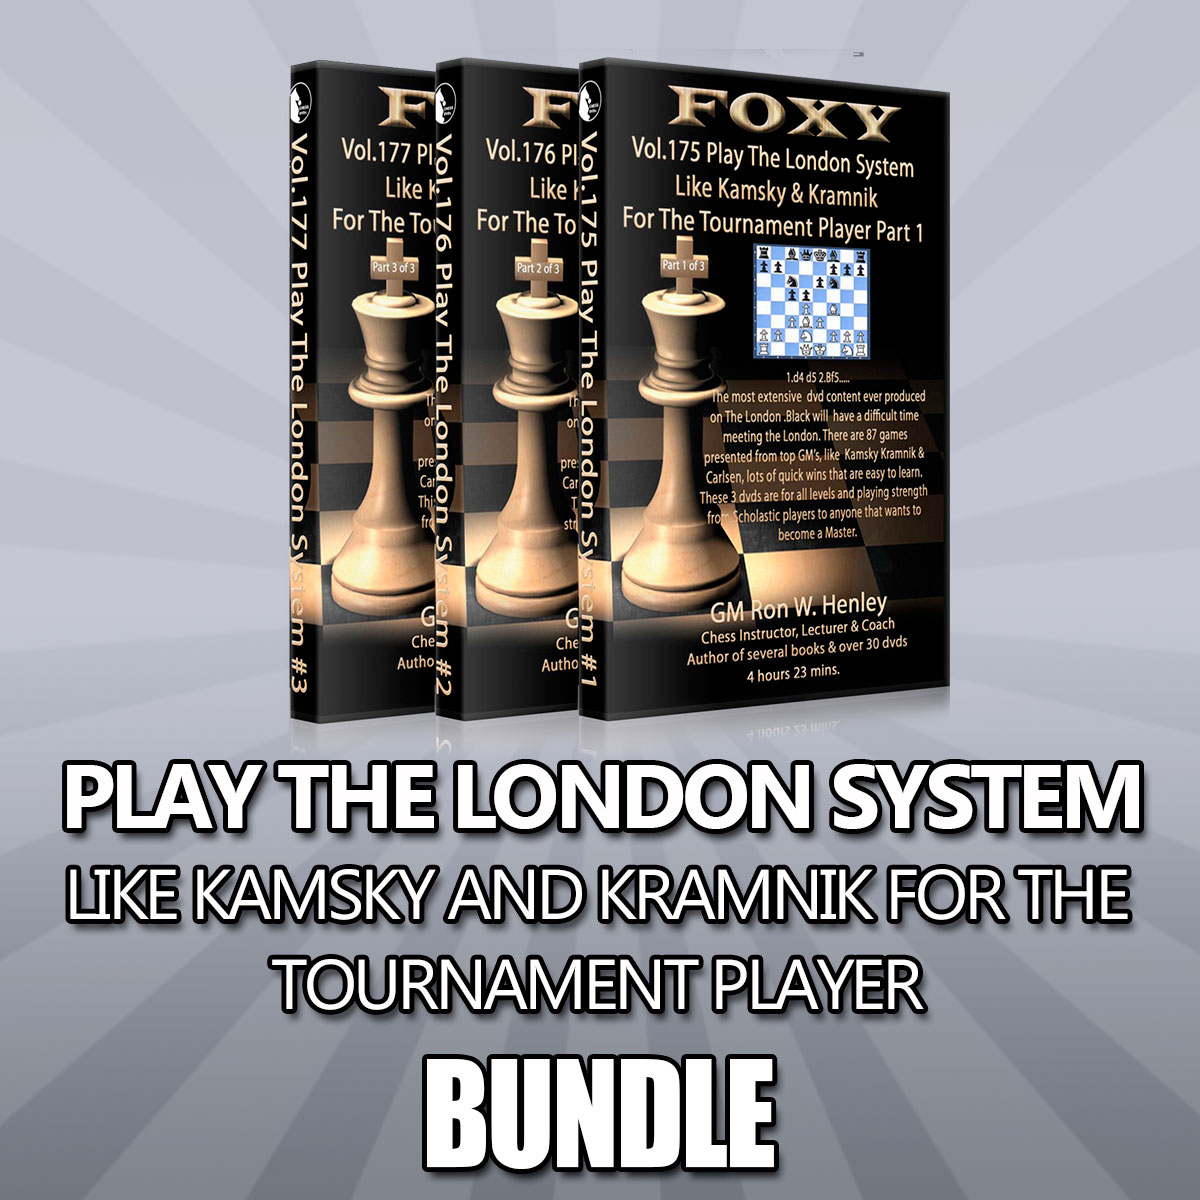 qqw0_play-the-london-system-bundle.jpg